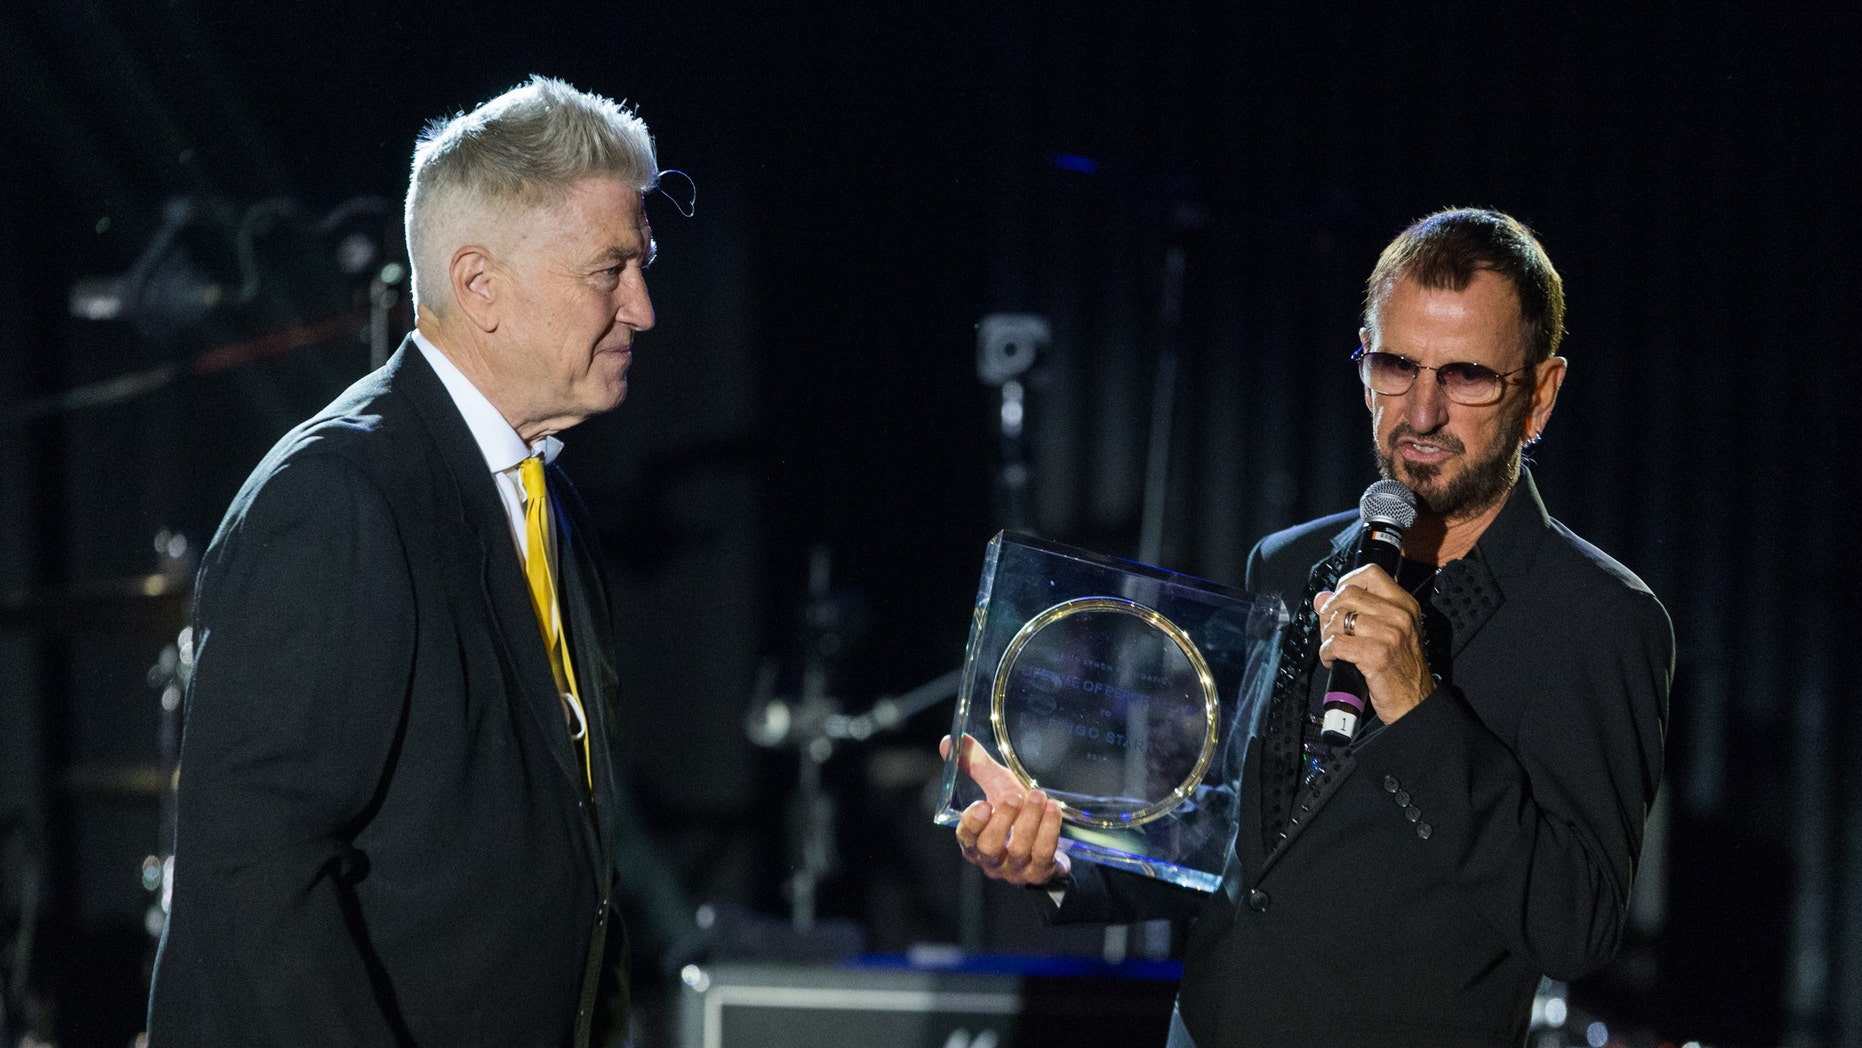 Director David Lynch, left, presents musician Ringo Starr with the Lifetime of Peace & Love Award on stage during the David Lynch Foundation event held at the El Rey Theatre on Monday, Jan. 20, 2014, in Los Angeles.